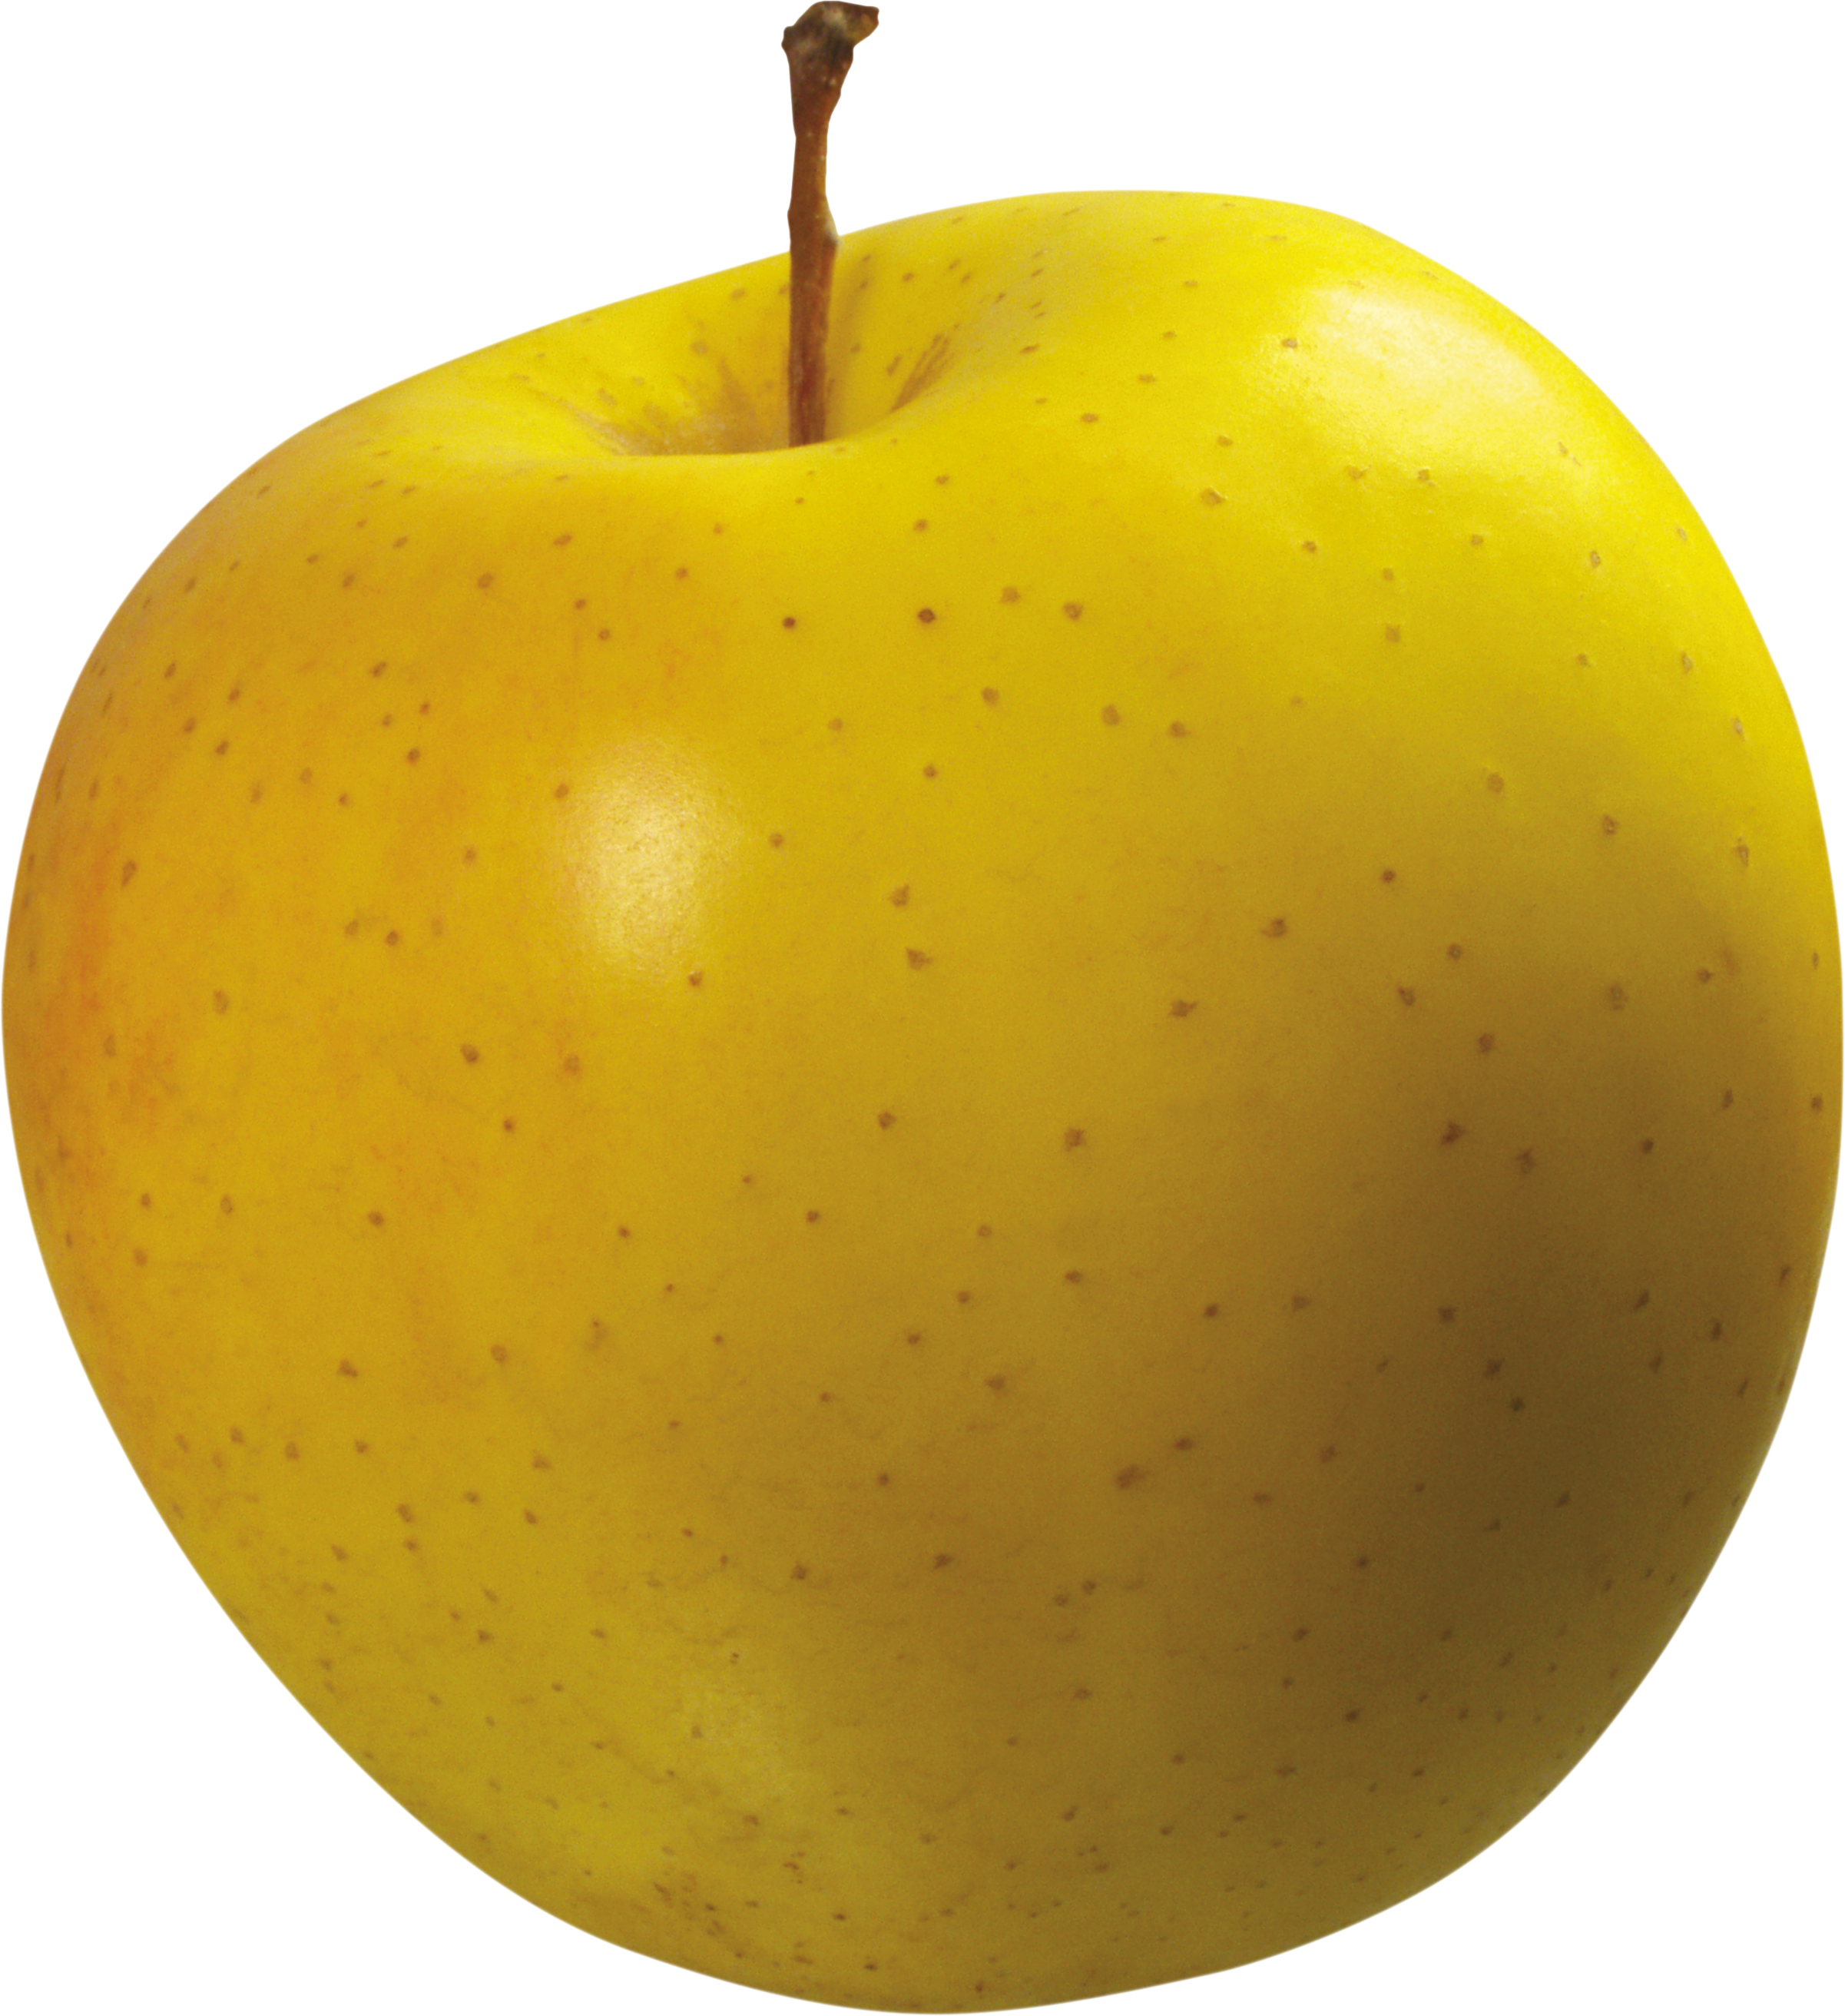 Yellow apple png image. Pear clipart five